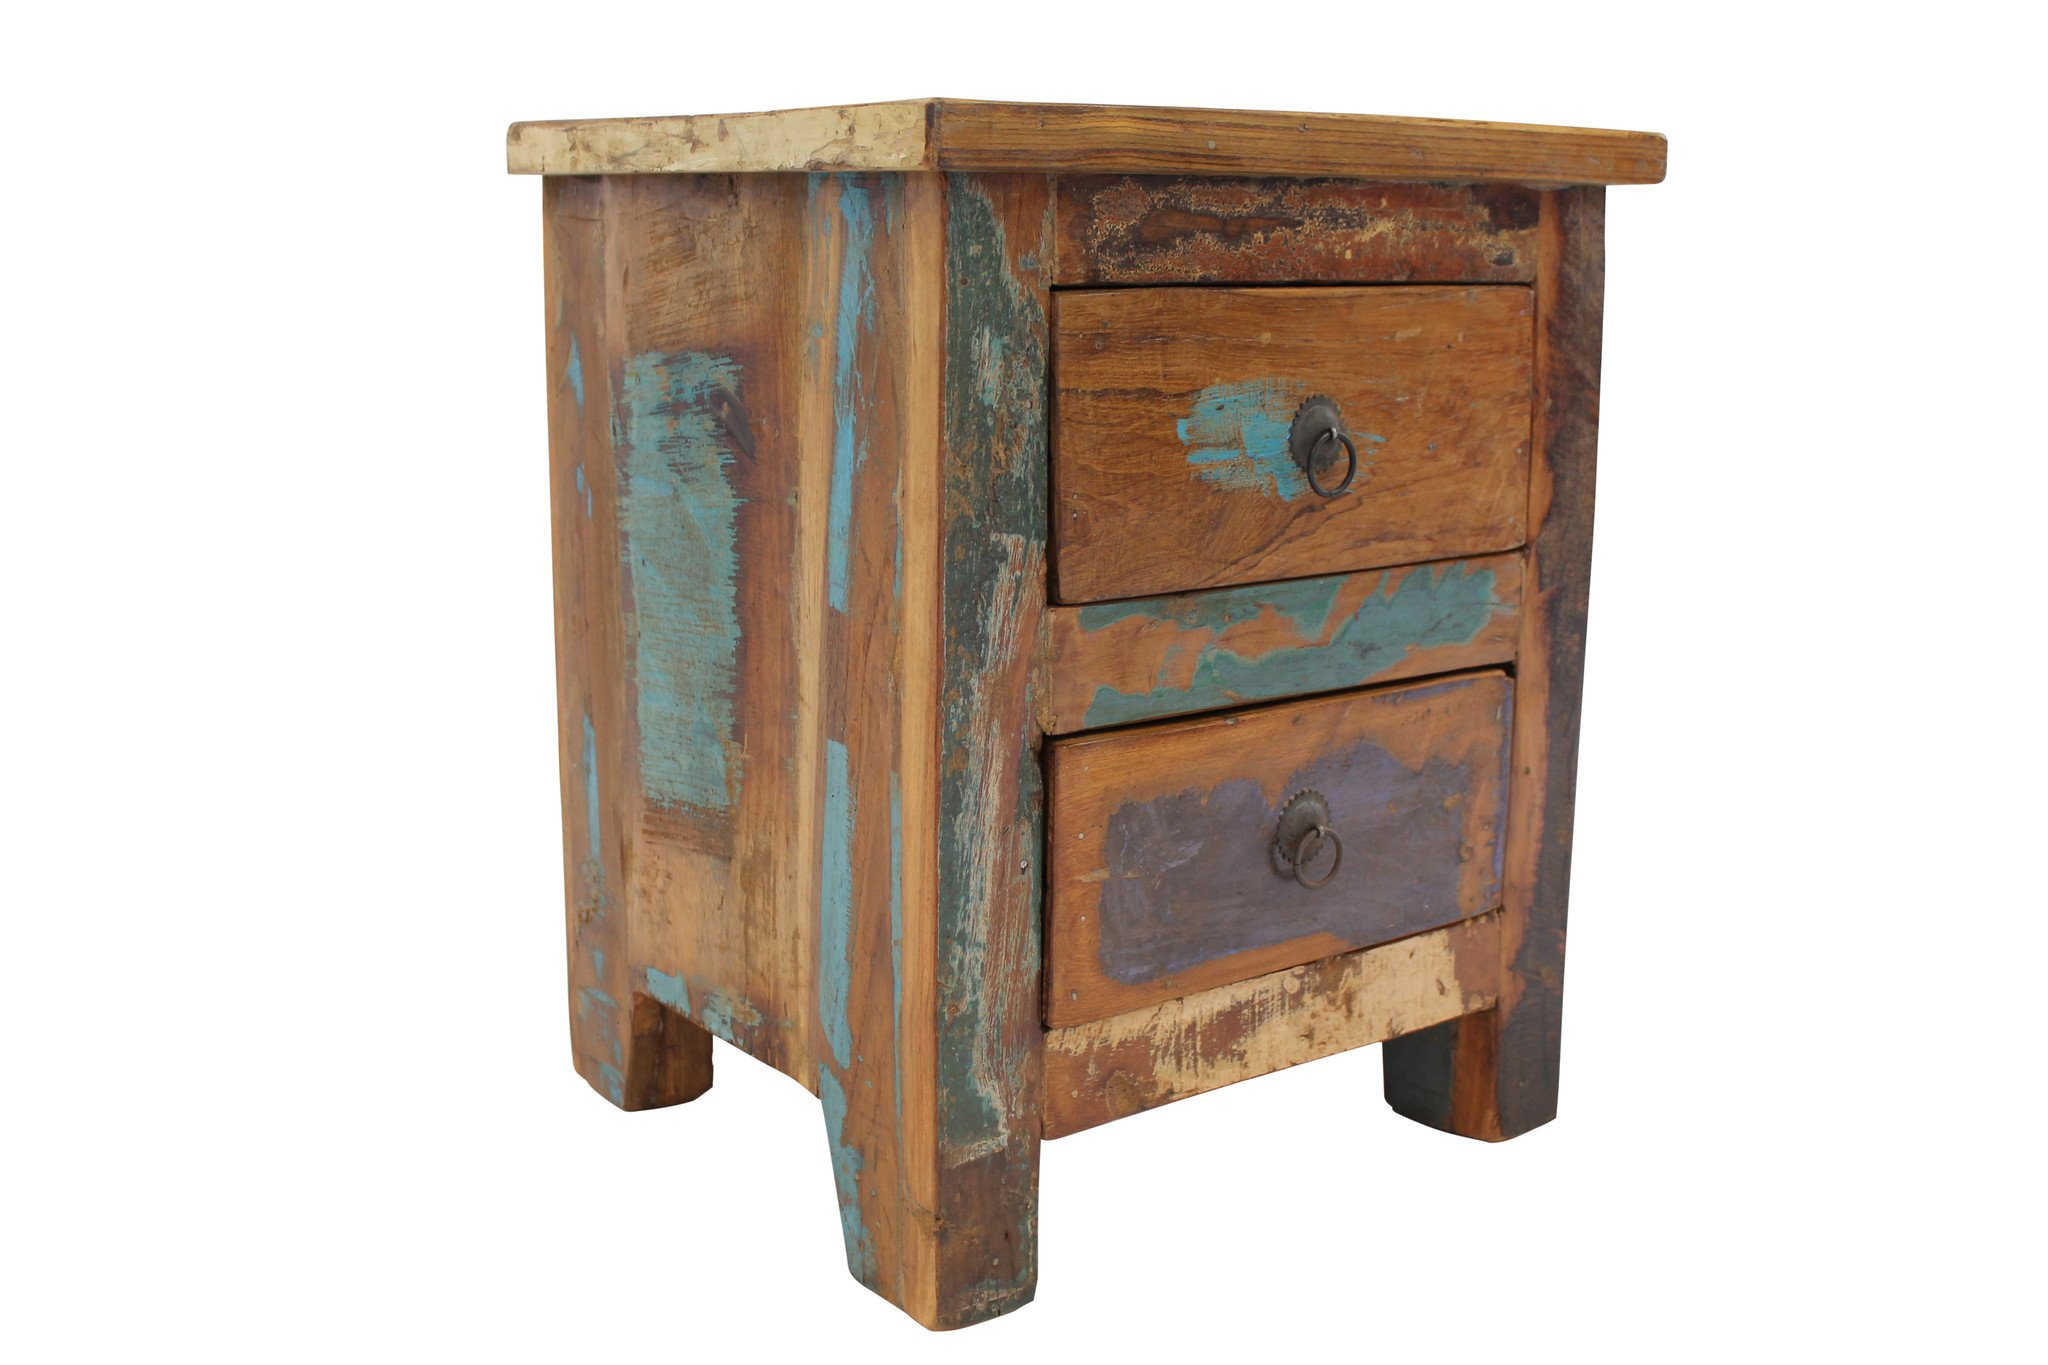 furniture beauty home with reclaimed wood side table end tables pottery barn rustic accent griffin nesting salvage pedestal console venetian bedside target night light simple